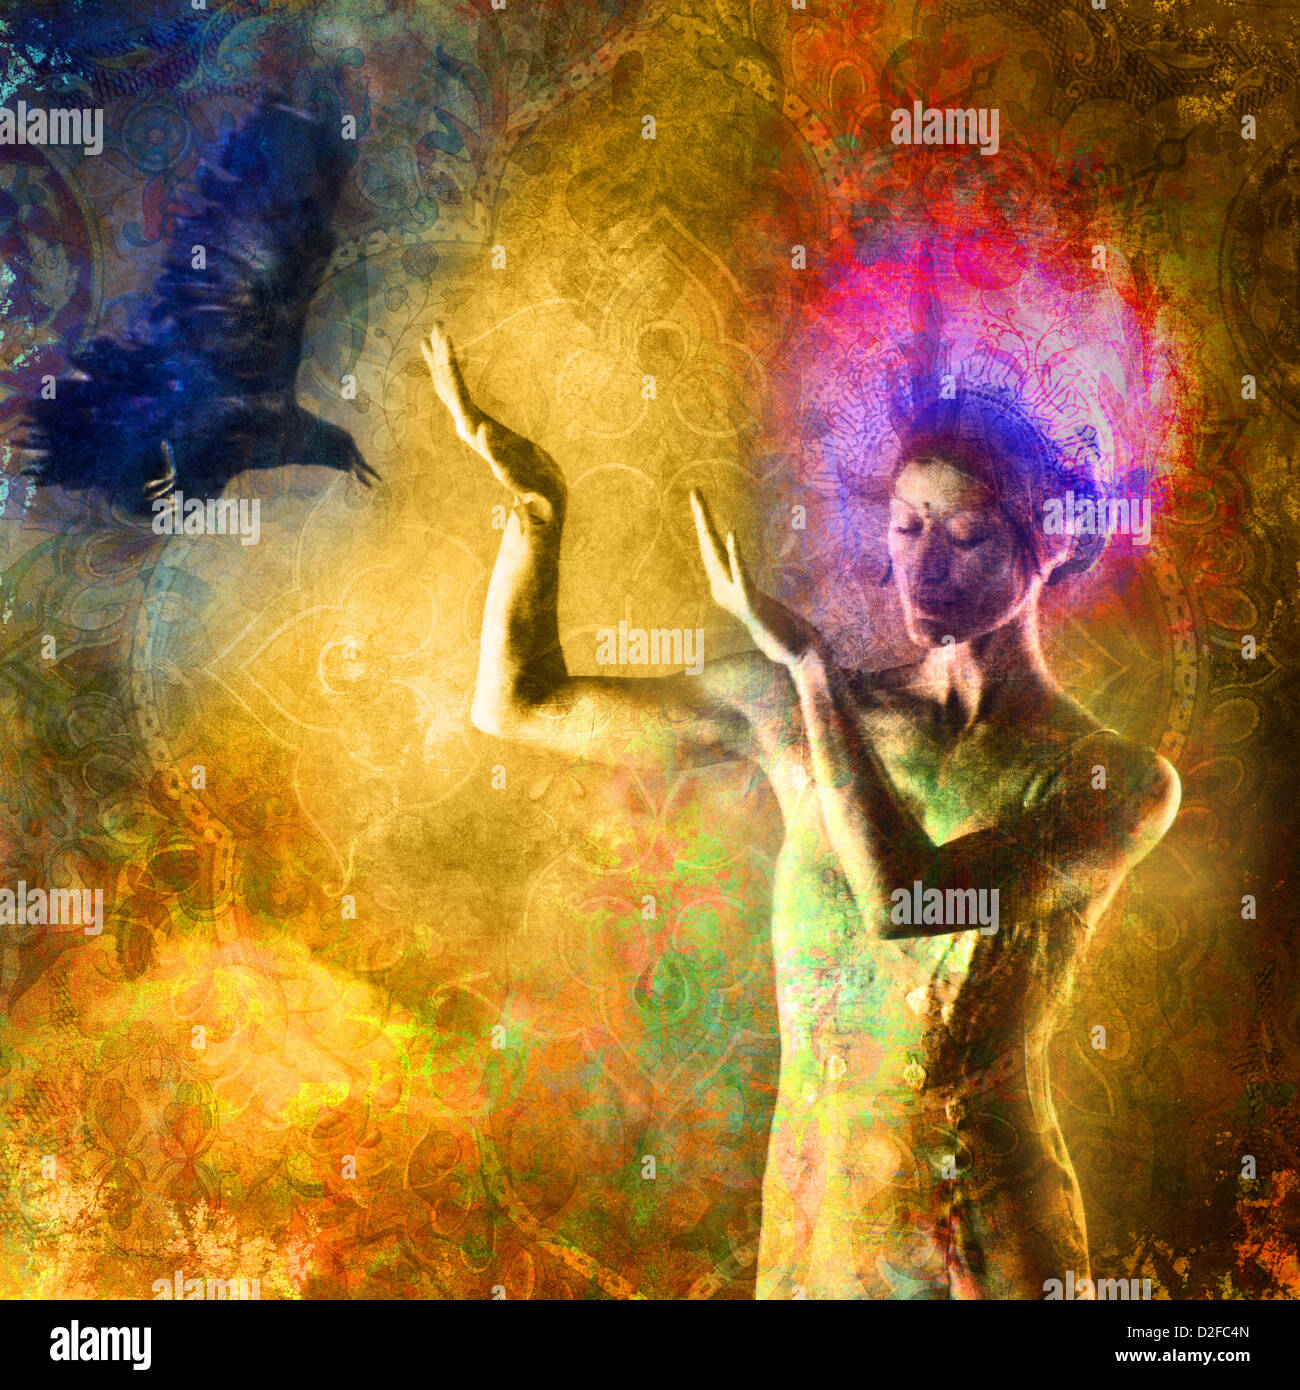 Woman with light crown gesturing towards in coming raven. Photo based illustration. - Stock Image